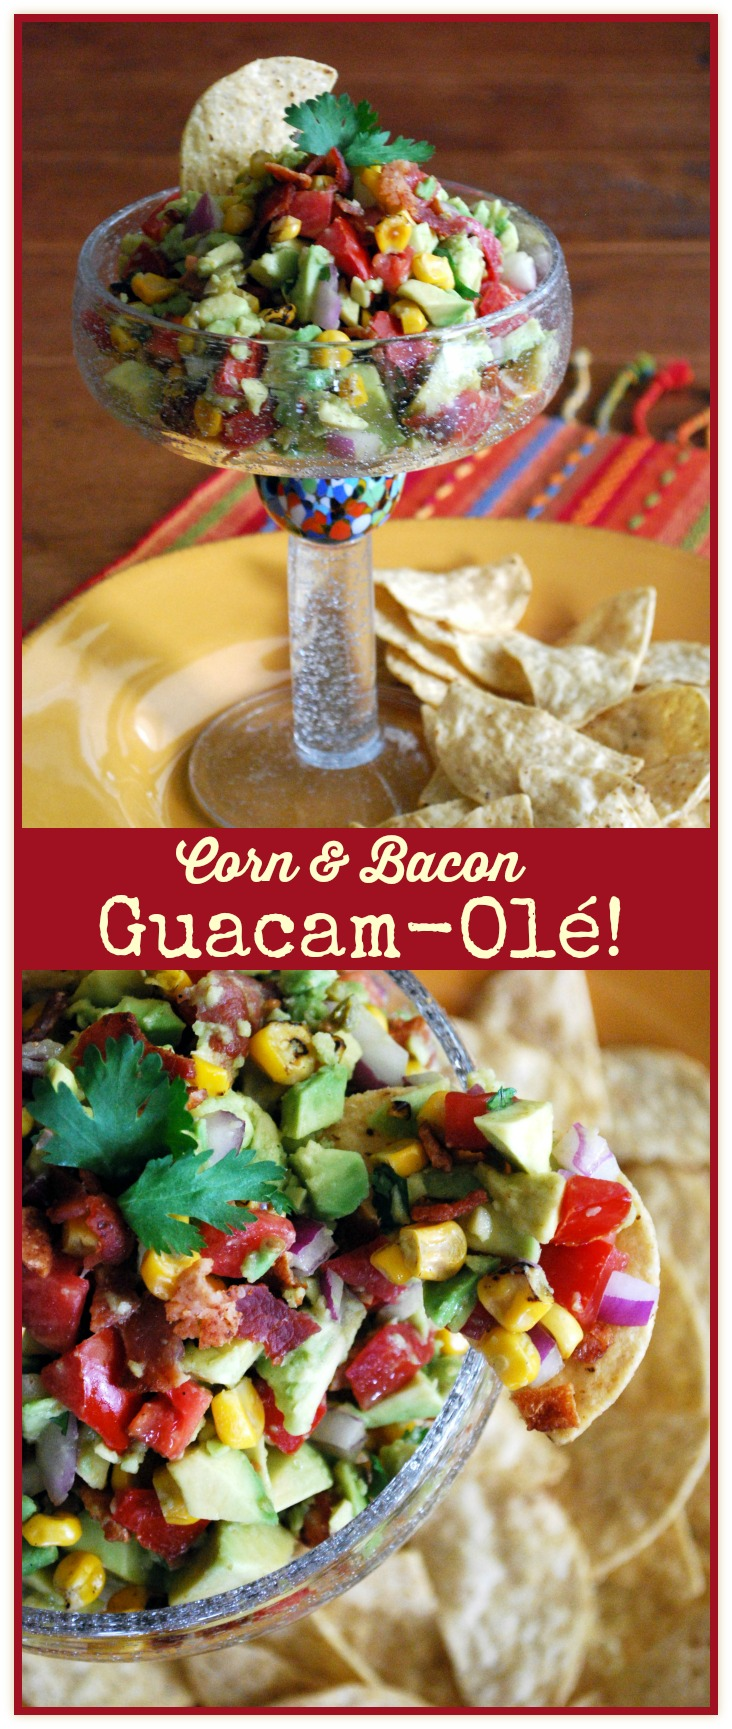 Corn & Bacon Guacam-Ole!